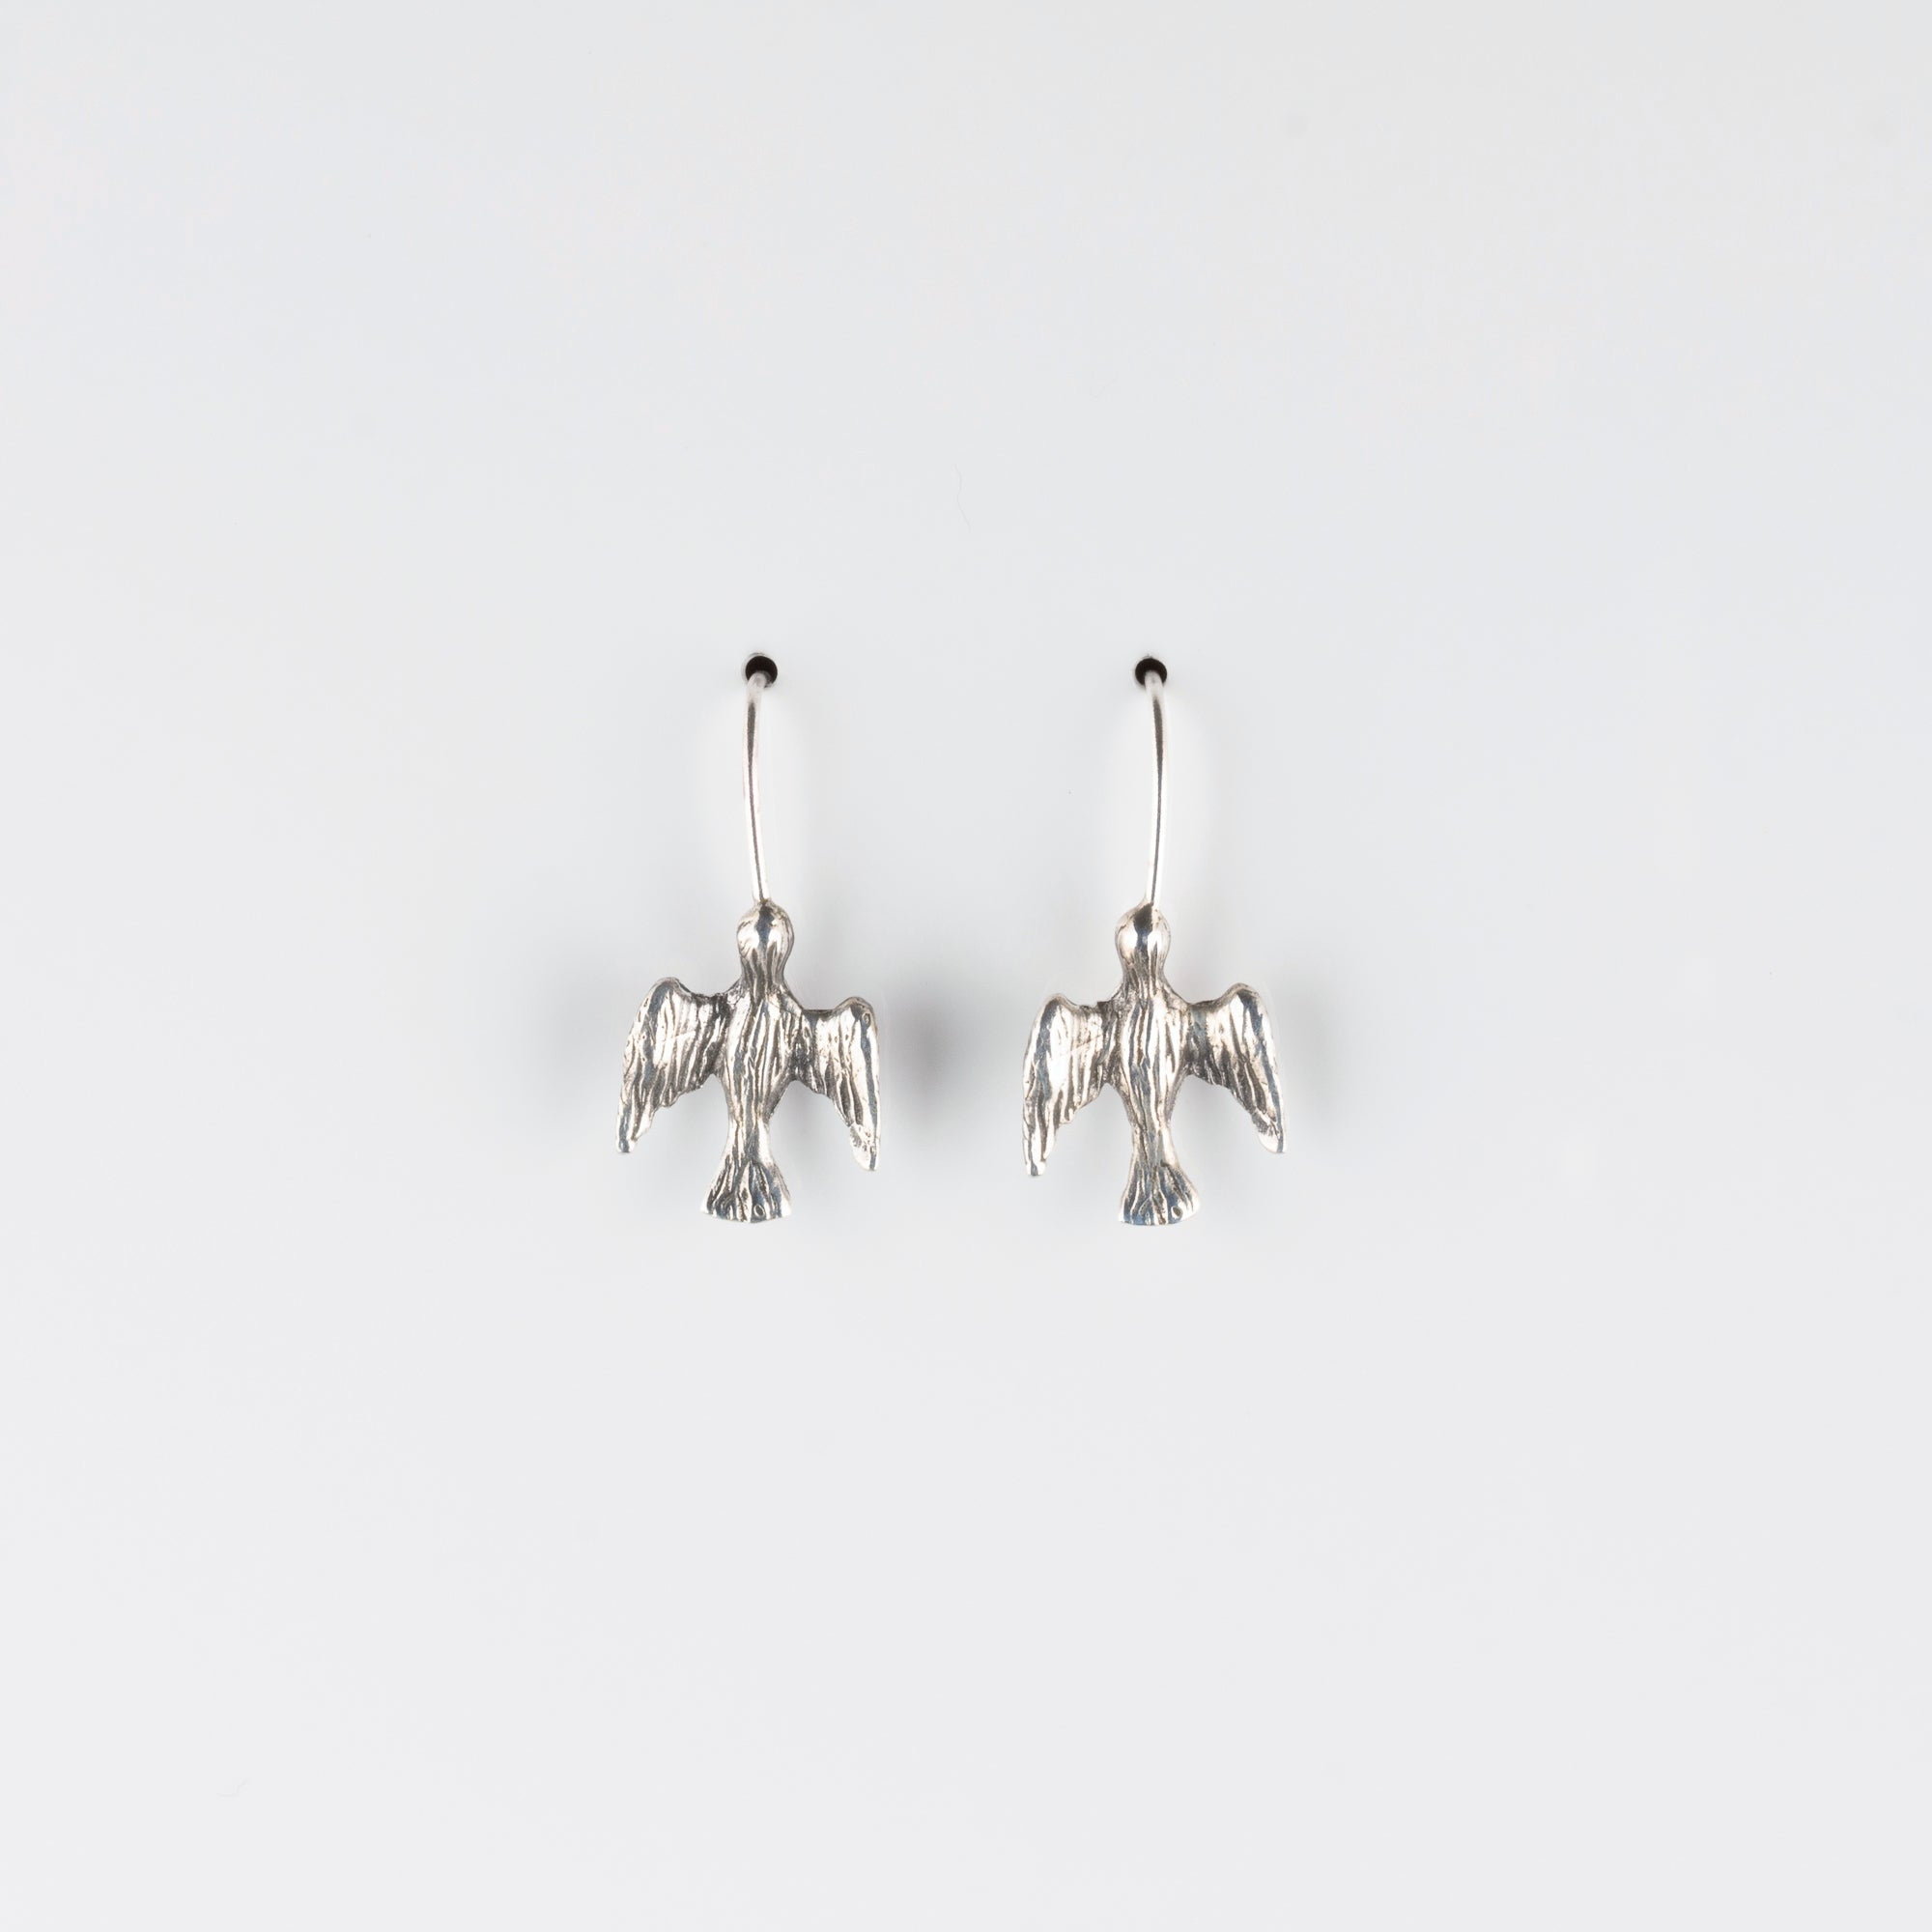 BIRD IN FLIGHT // SILVER EARRINGS